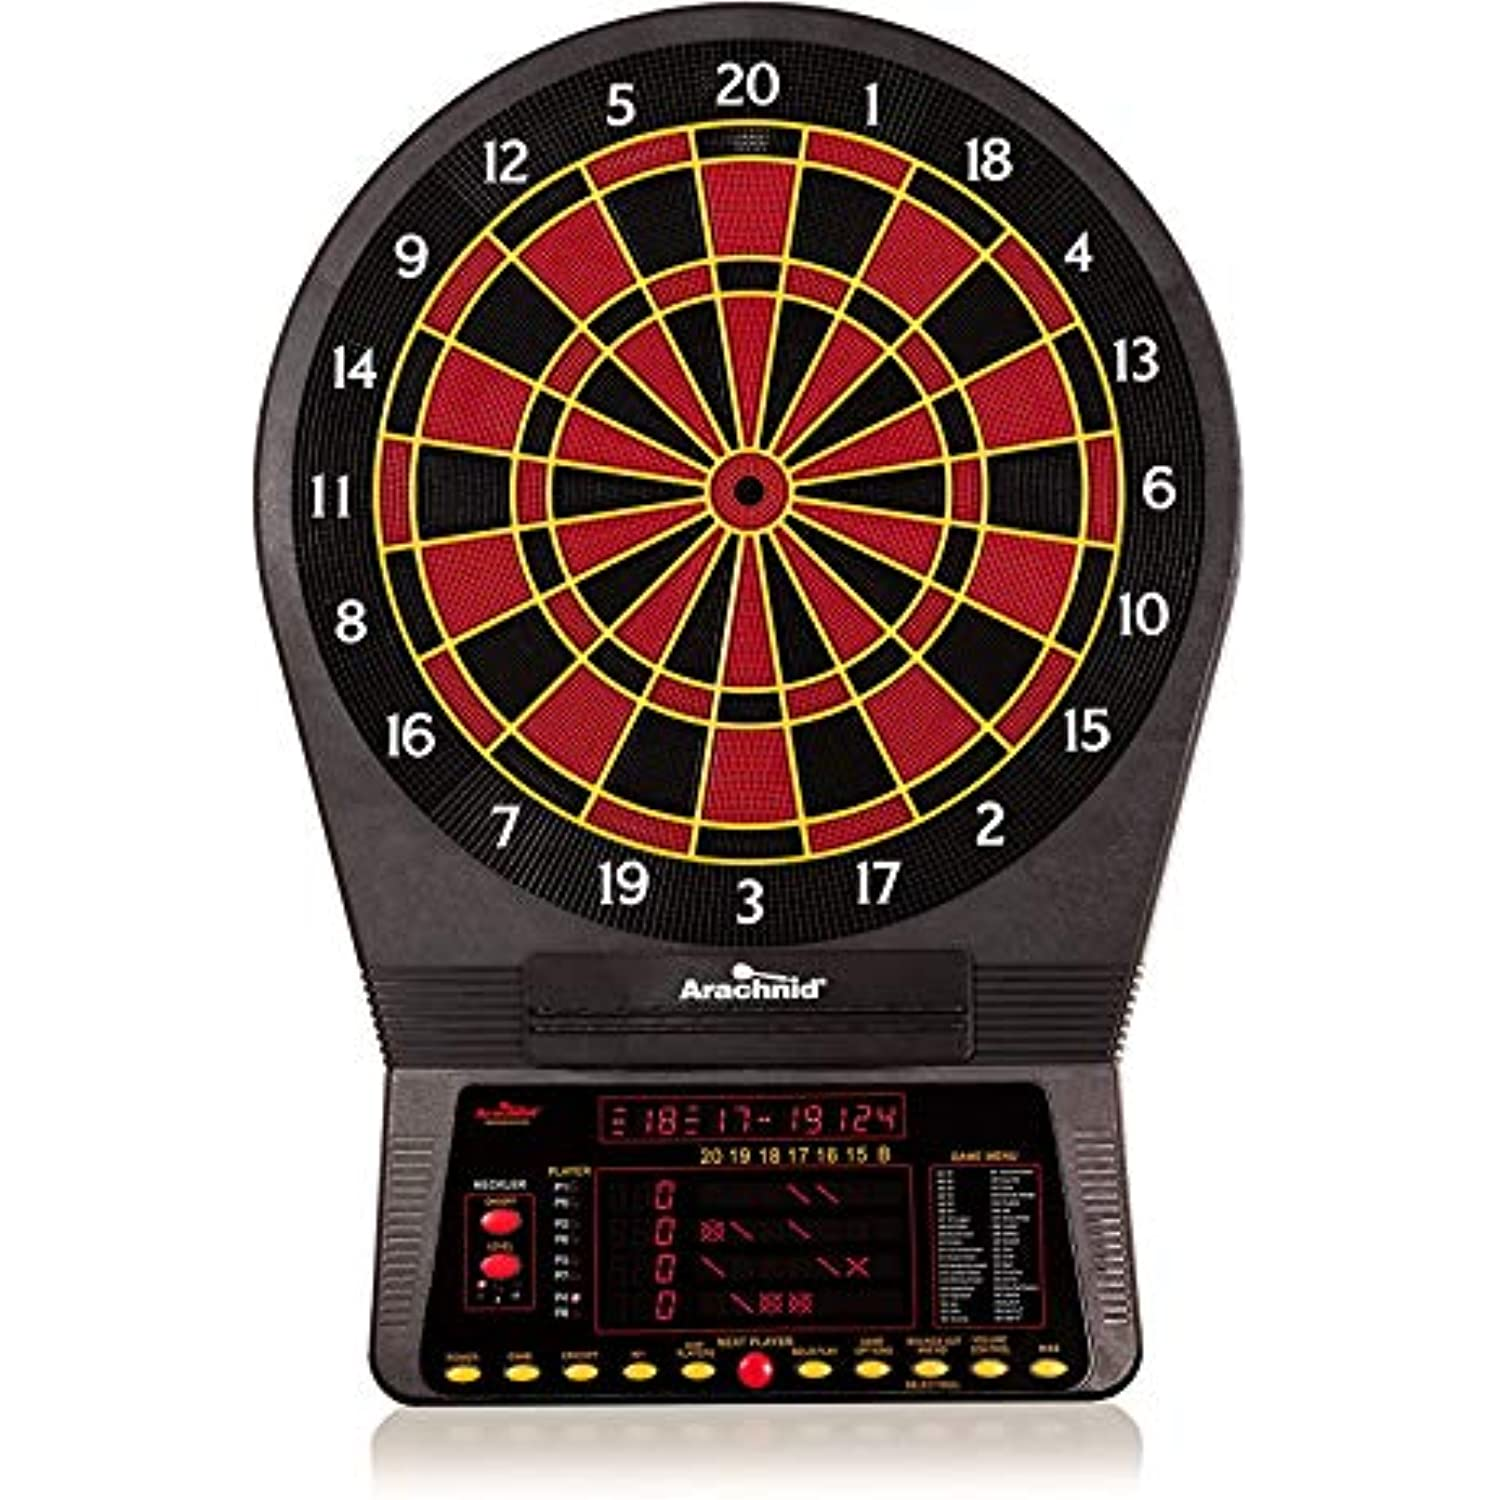 Arachnid Cricket Pro 800 Electronic Dartboard with NylonTough Segments for Improved Durability and Playability and Micro-thin Segment Dividers for ReducedBounce-outs , Black